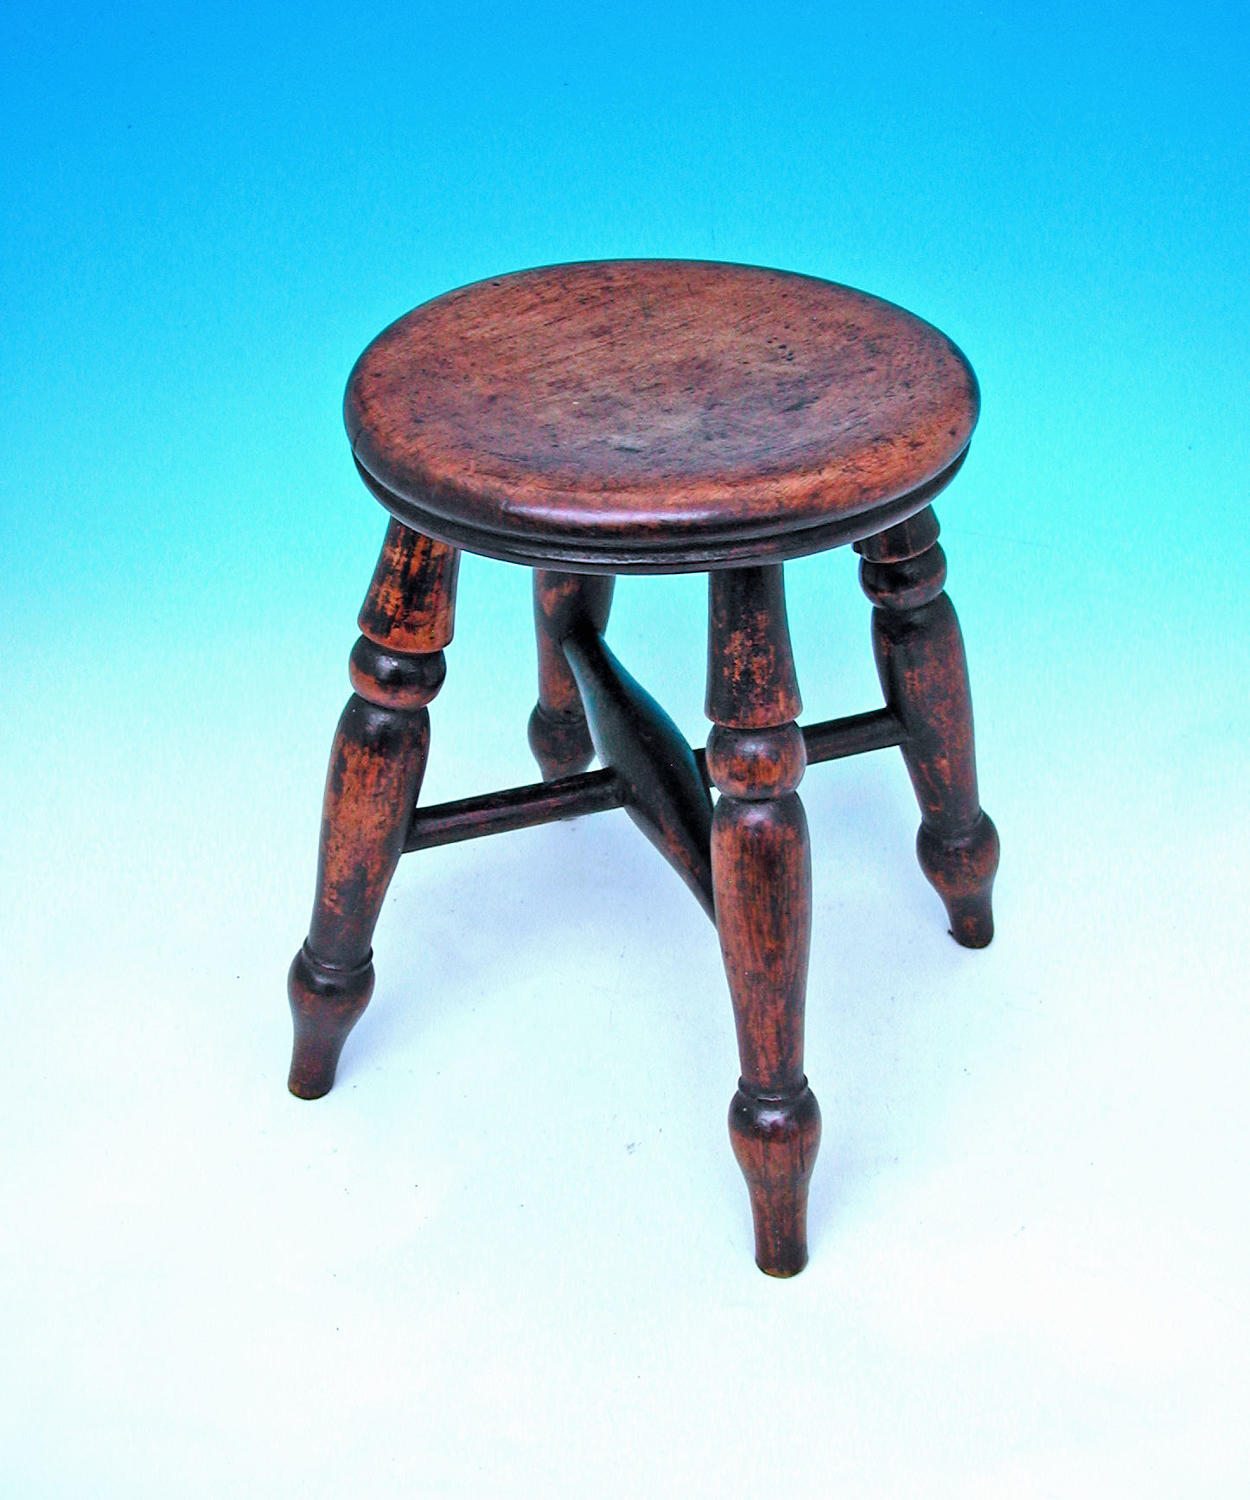 Antique 19thc Turned Ash & Elm Childs Stool. English. C1860-80